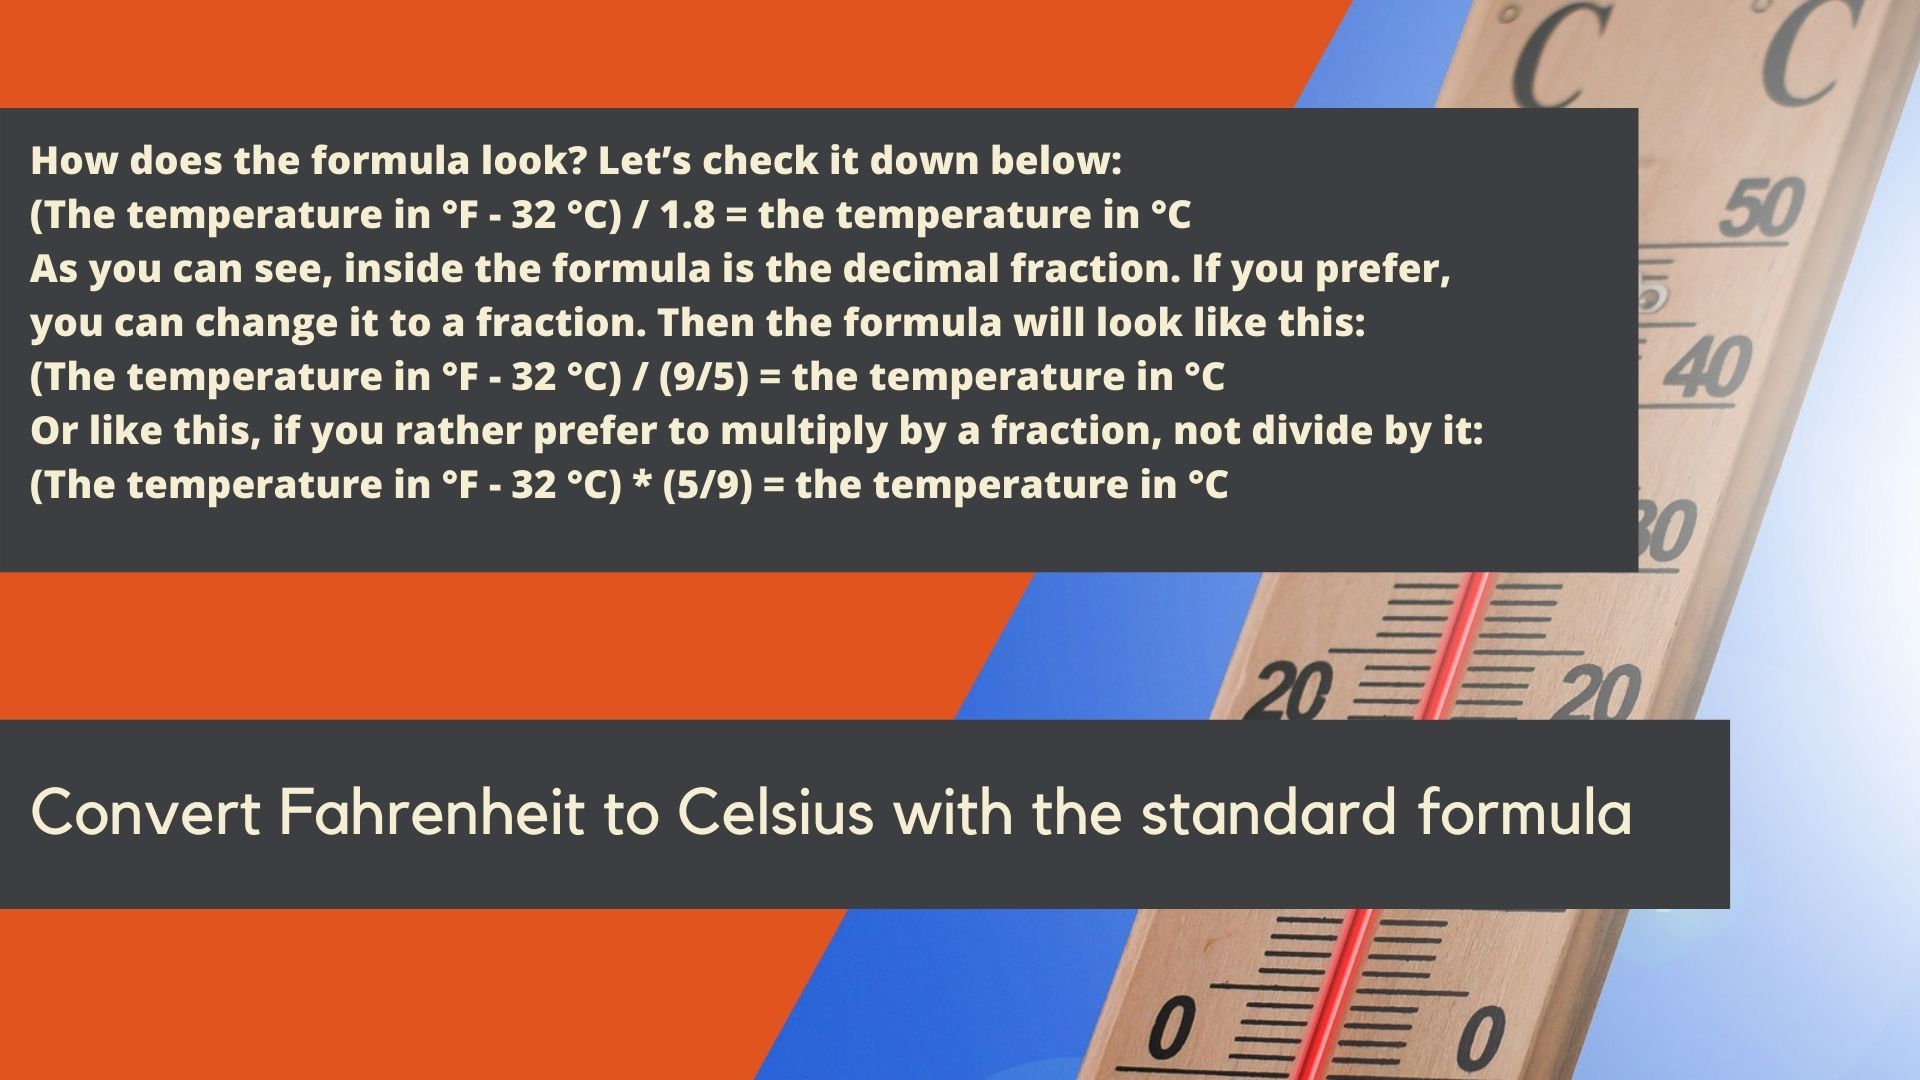 Convert Fahrenheit to Celsius with the standard formula